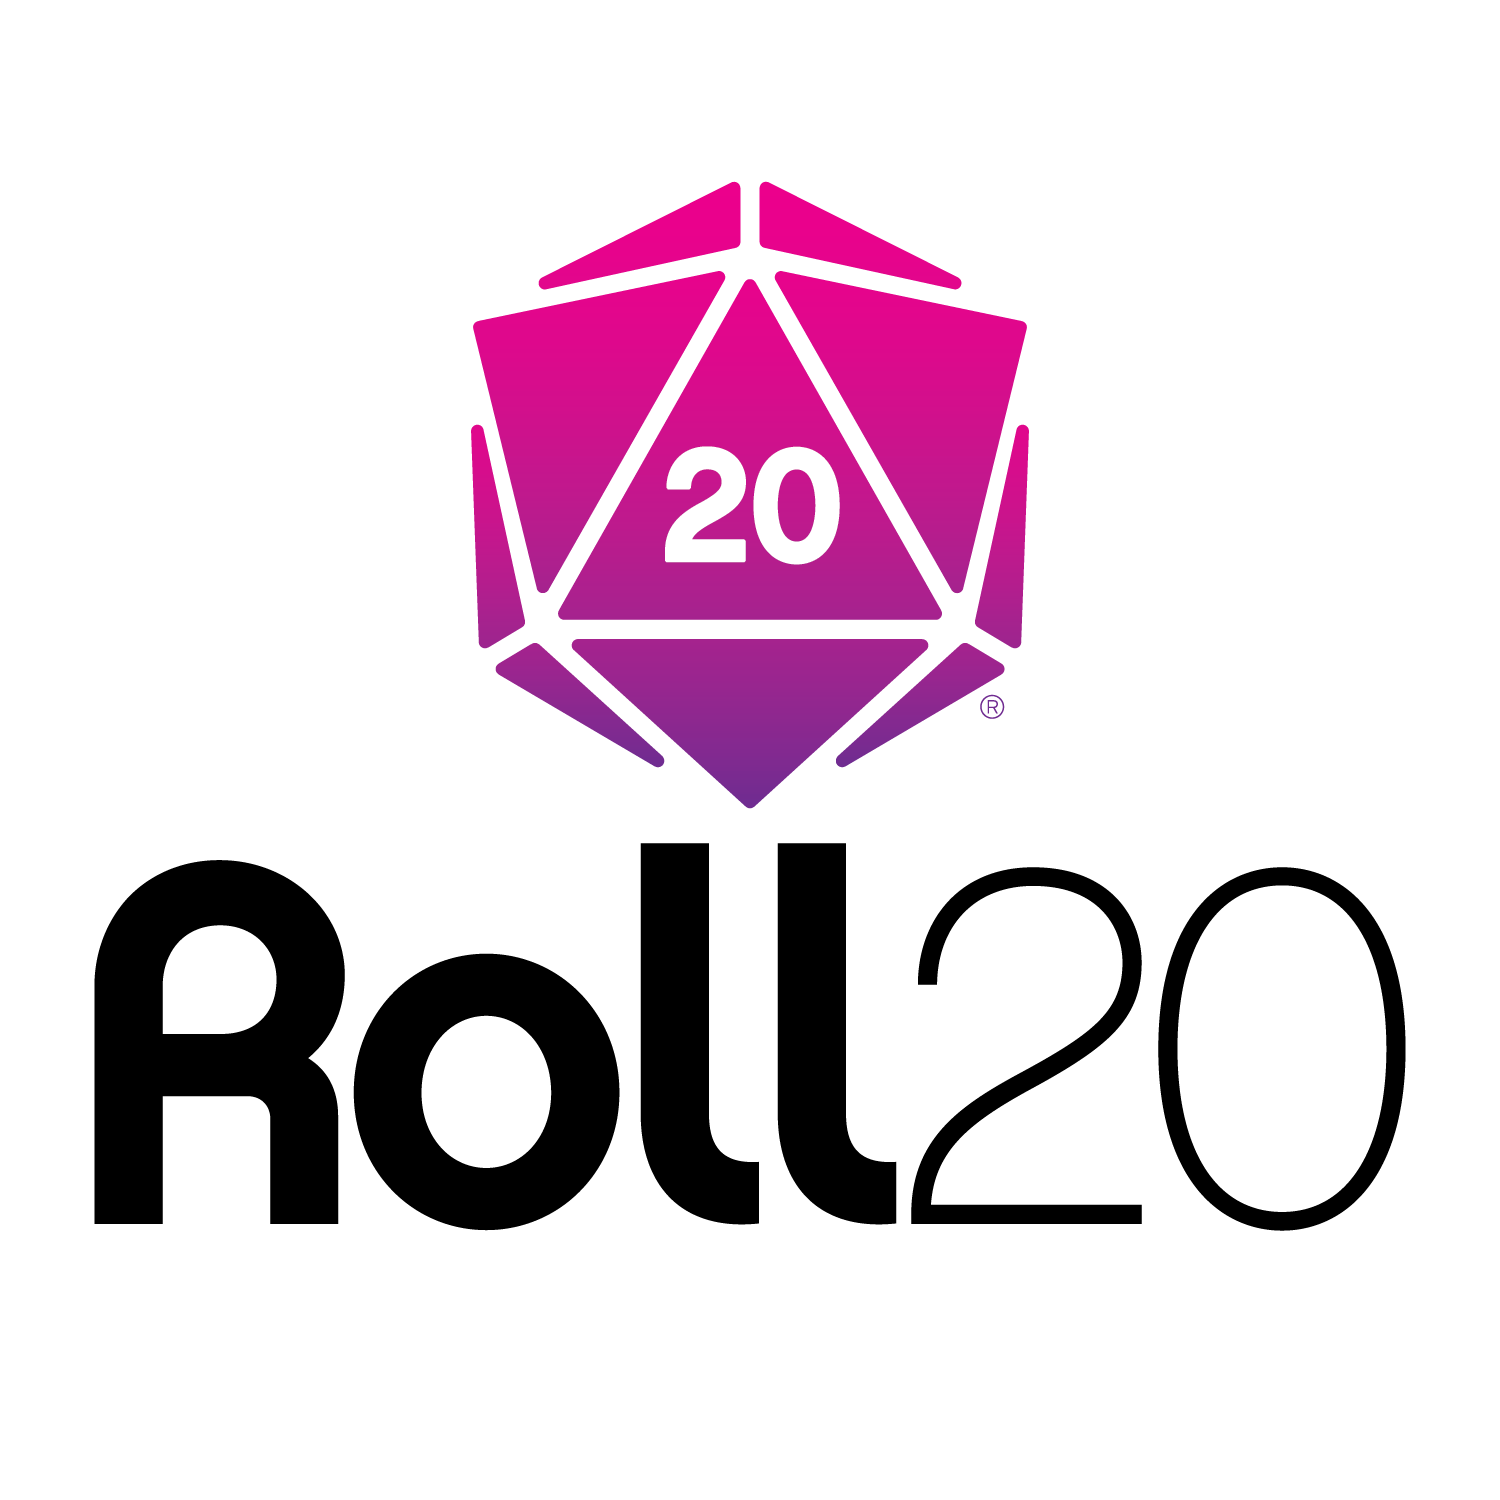 marketplace.roll20.net